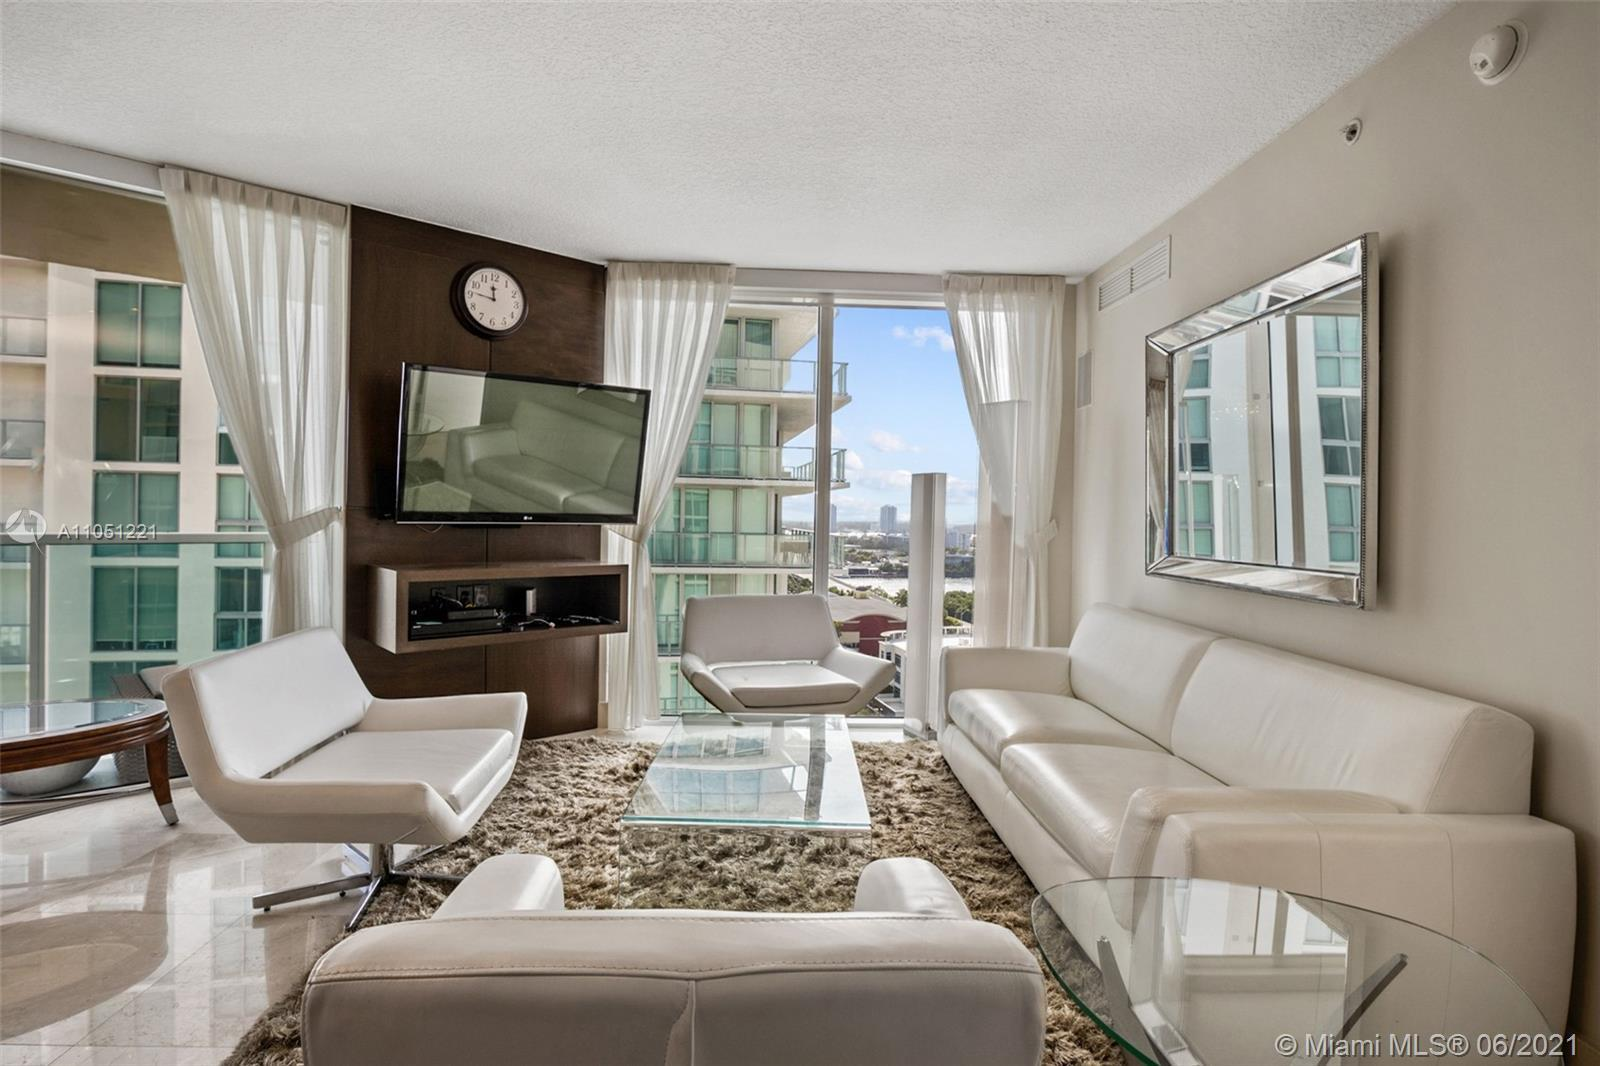 Spectacular 3/2 unit at St Tropez in Sunny Isles Beach. This condo features marble flooring, open ki